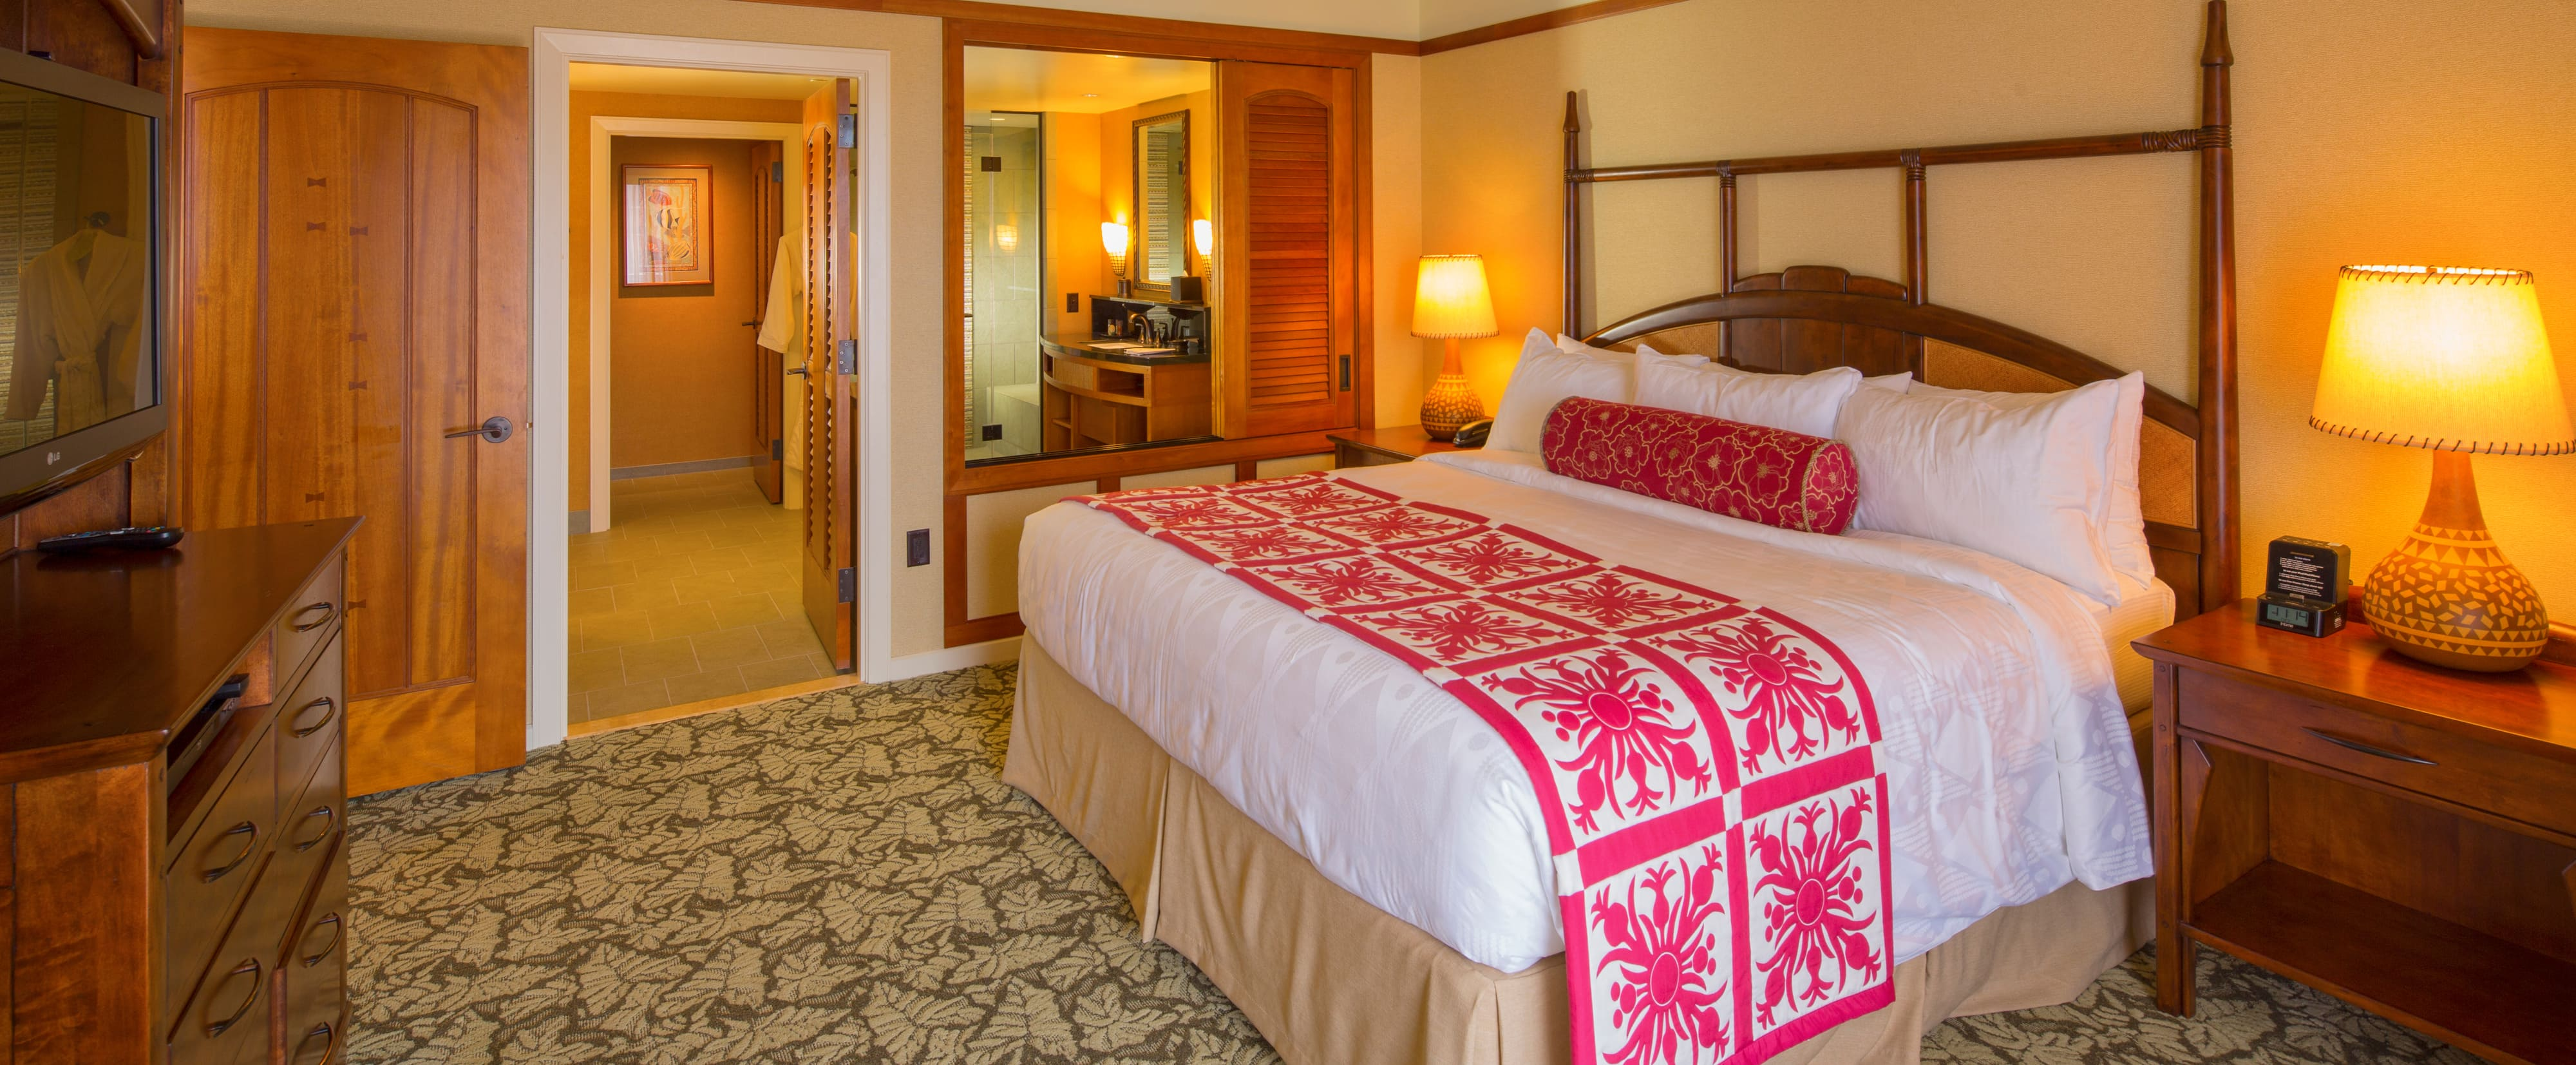 The master bedroom of the 1-Bedroom Suite